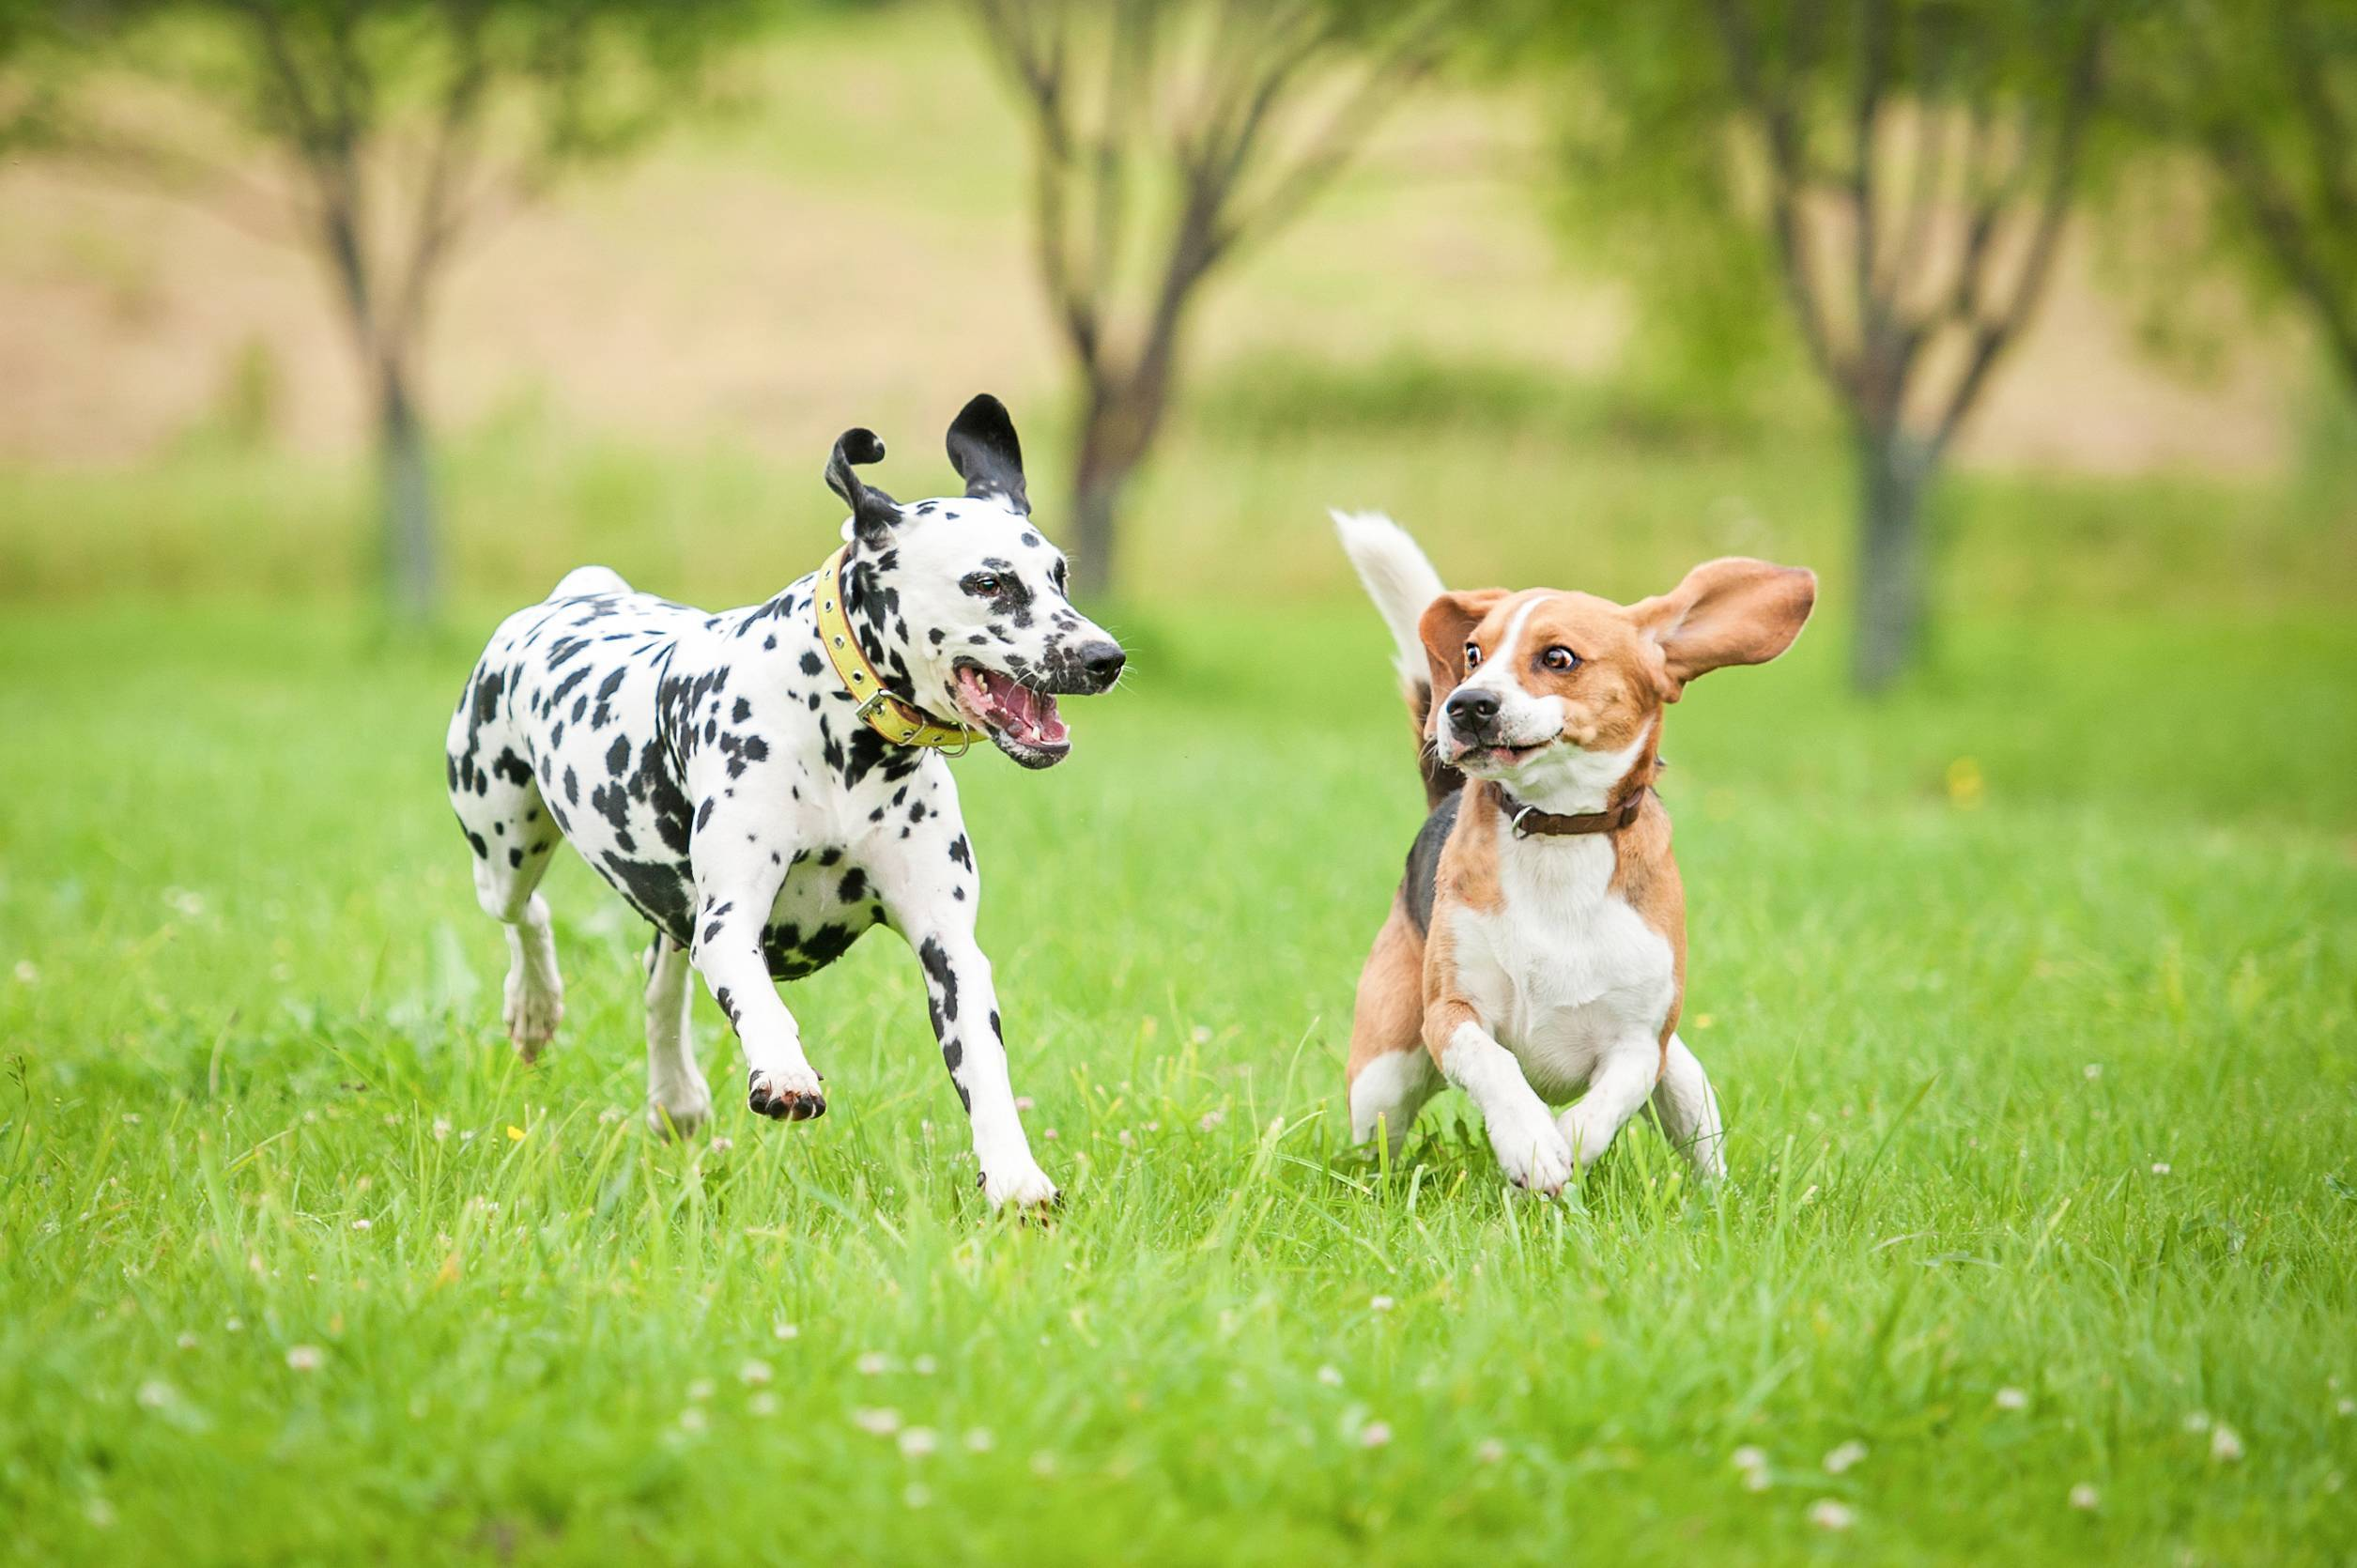 Dalmation + Beagle Running